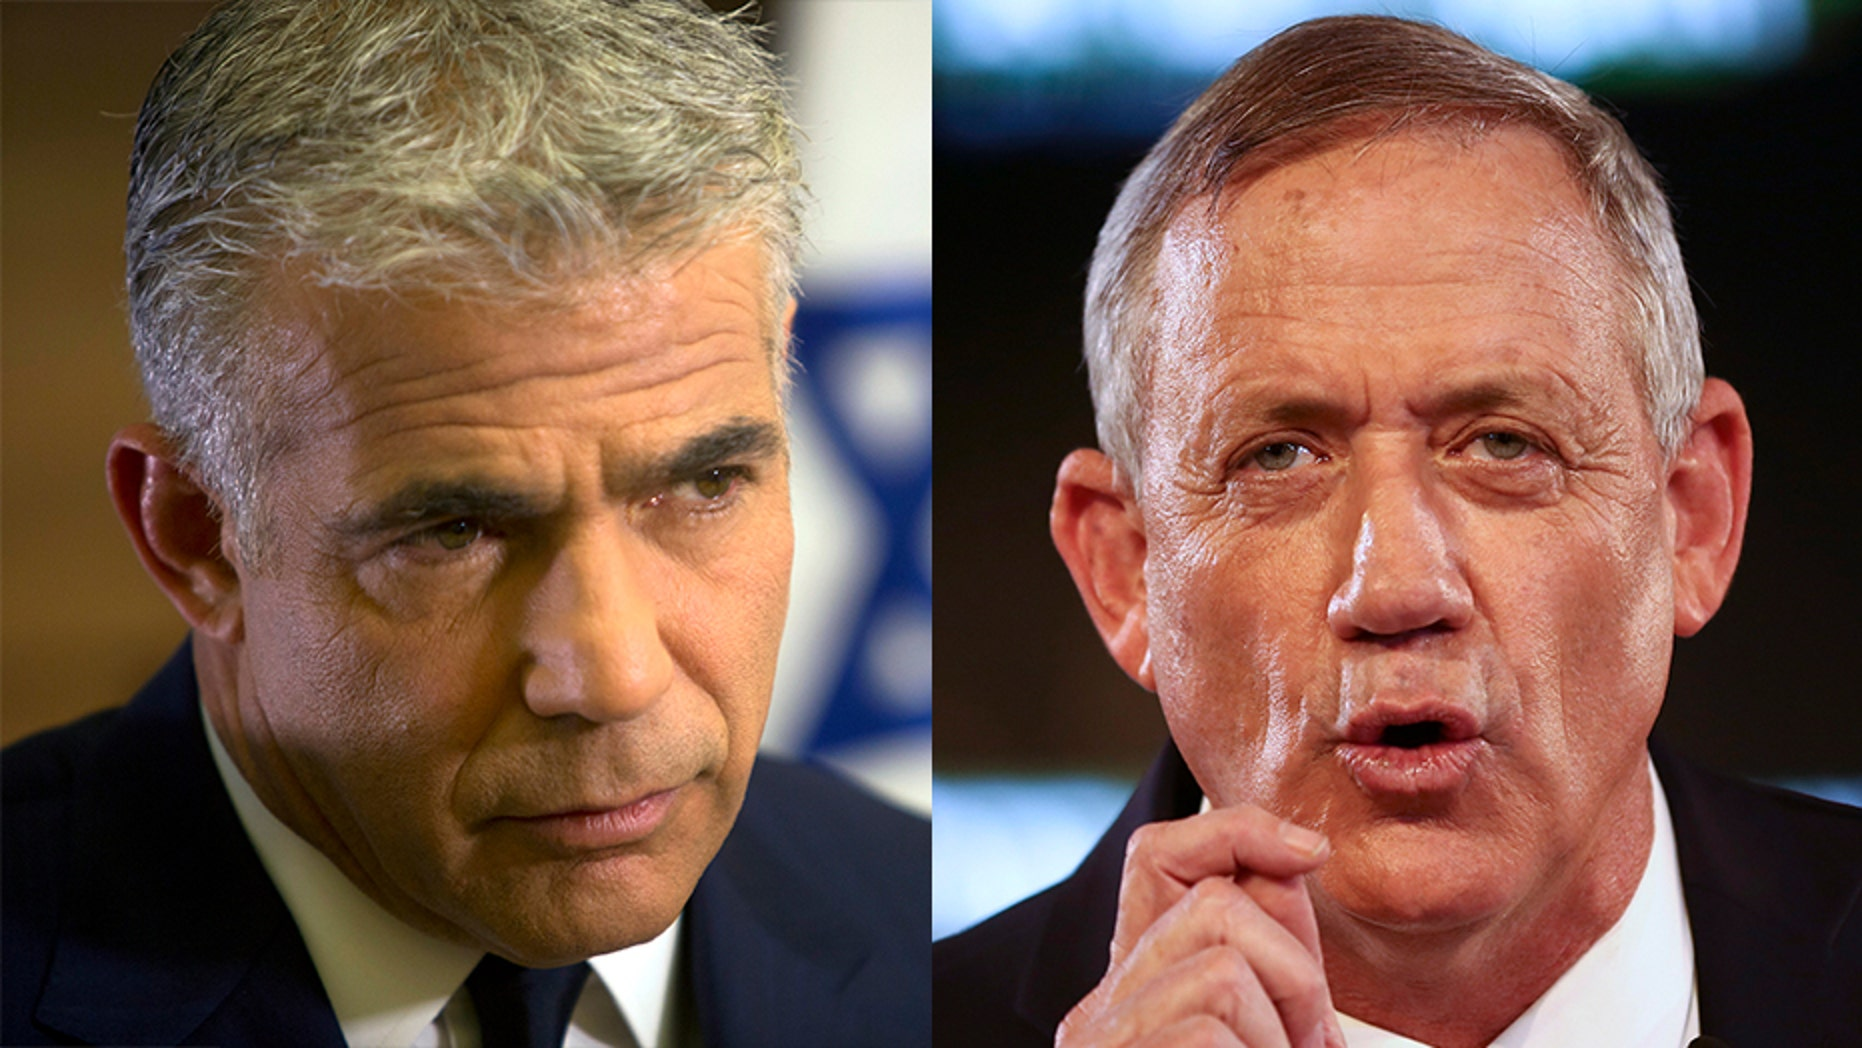 Television host turned politician Yair Lapid (left) and retired military chief Benny Gantz (right) have formed a joint party to run against Israel's Prime Minister Benjamin Netanyahu.